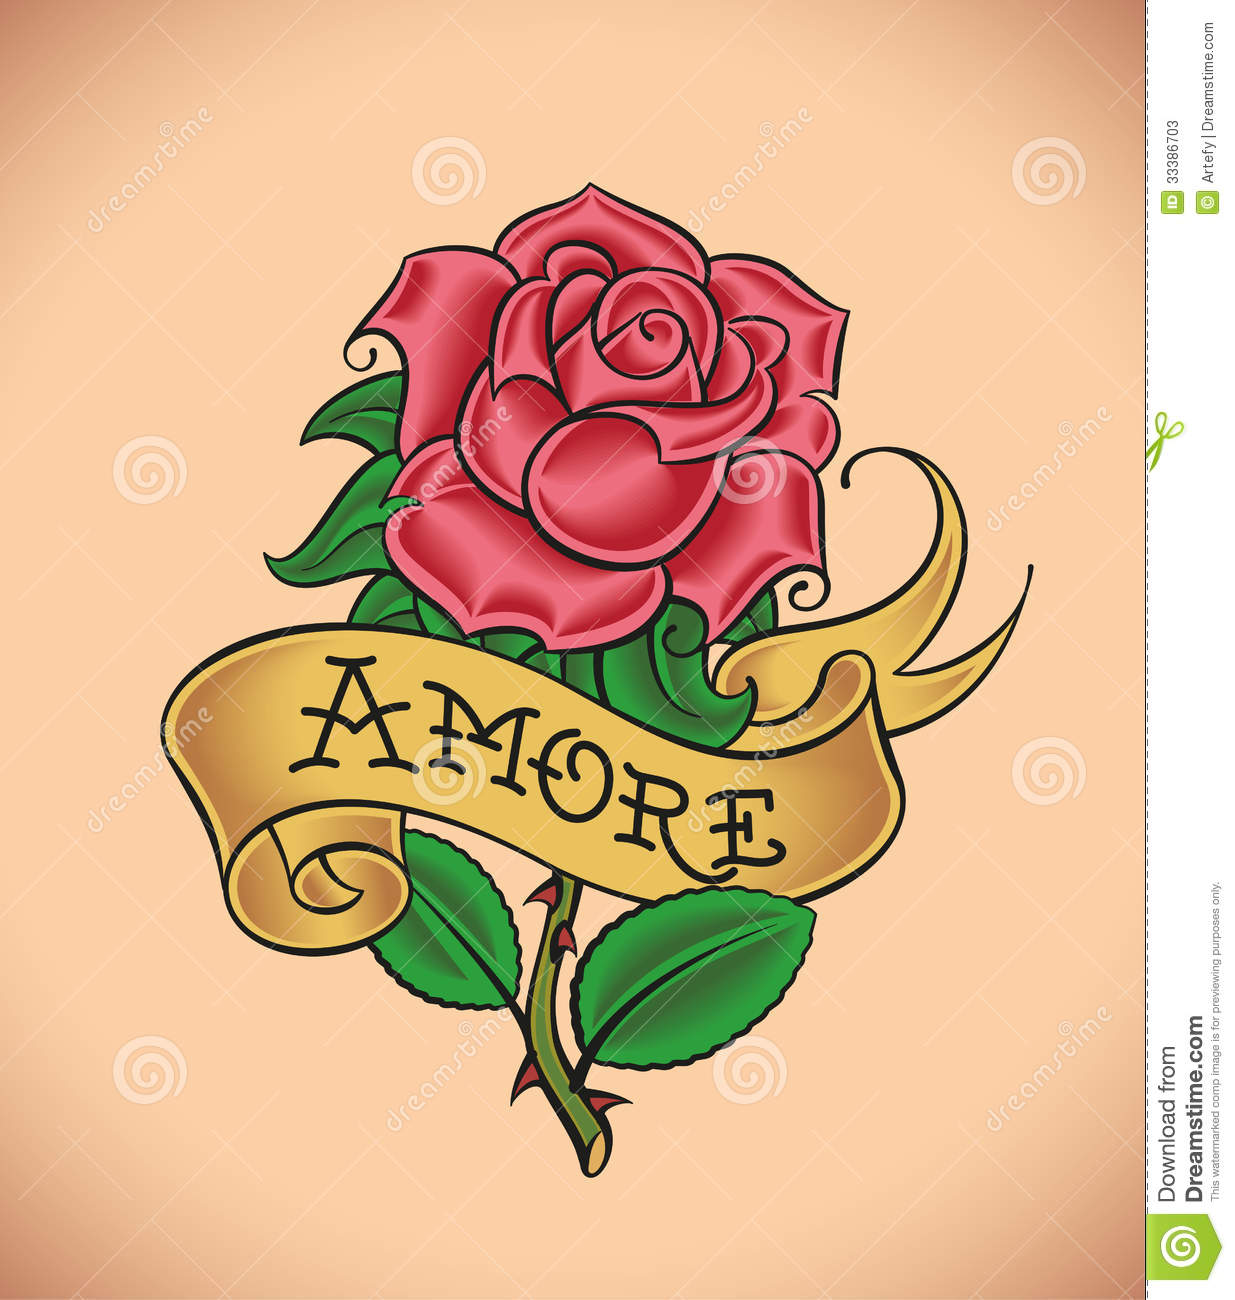 Old School Rose Amore Stock Vector Illustration Of Greeting